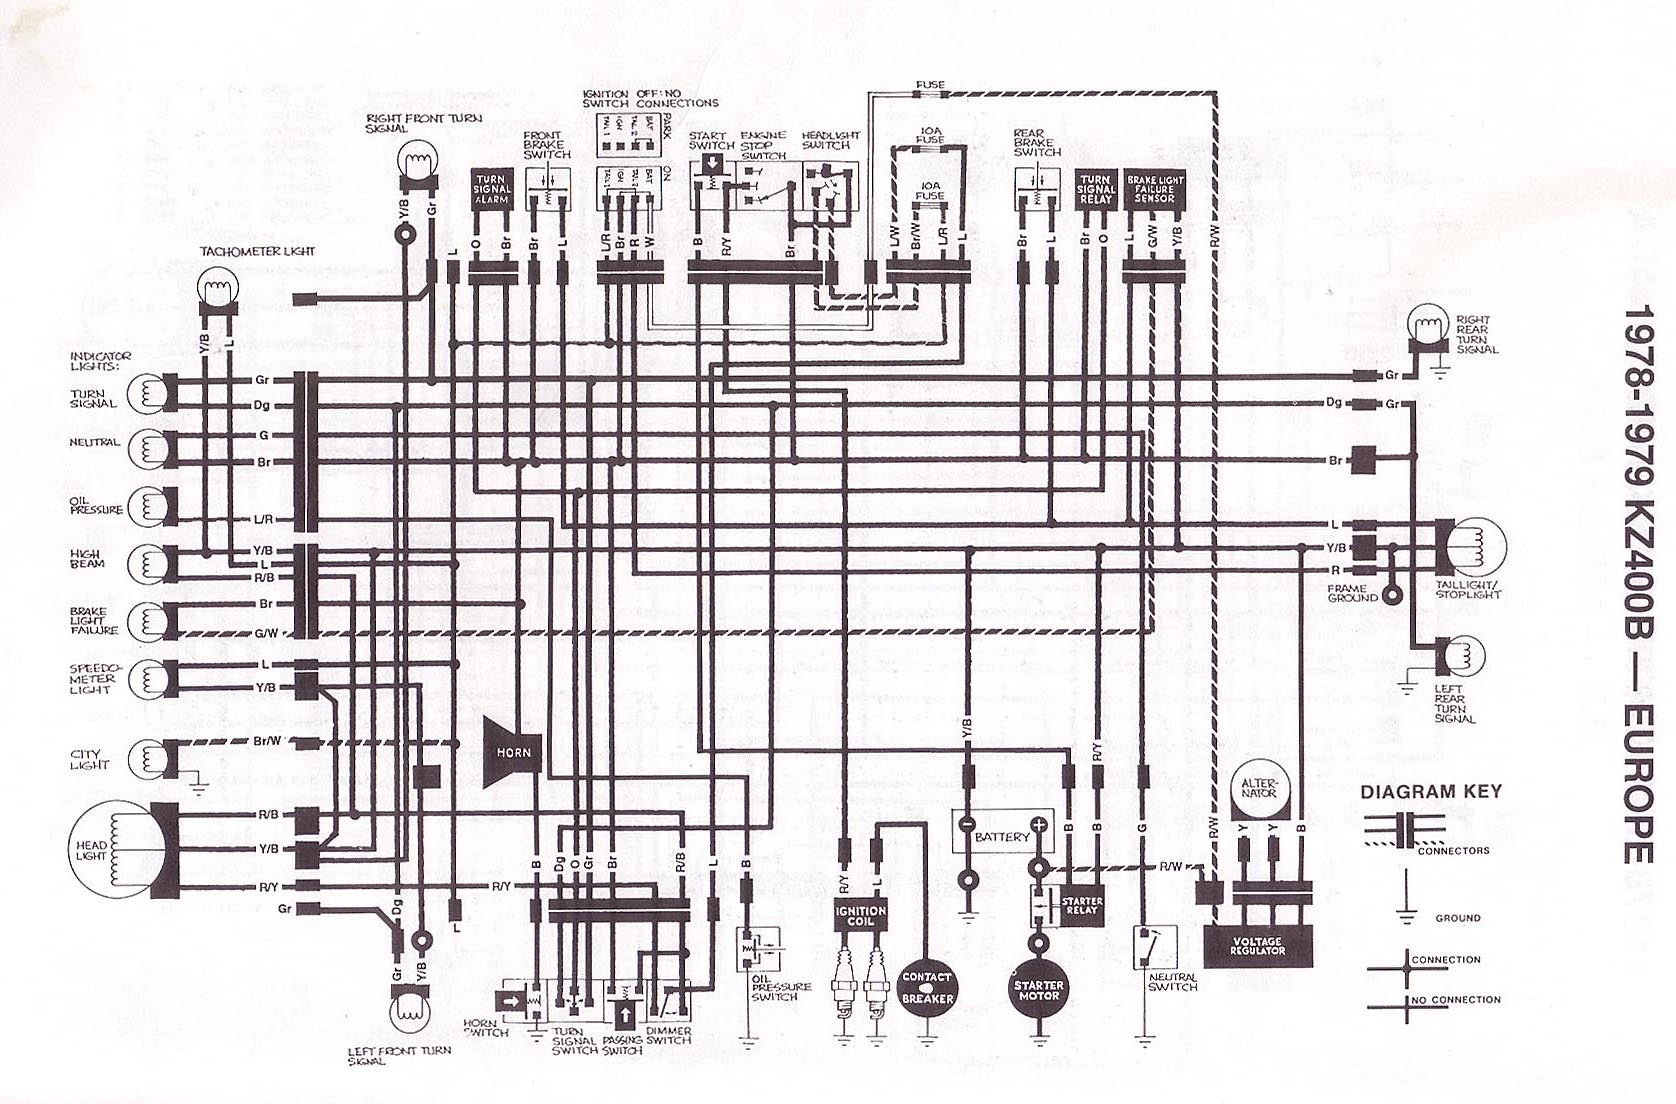 ltz 400 wiring diagram   22 wiring diagram images